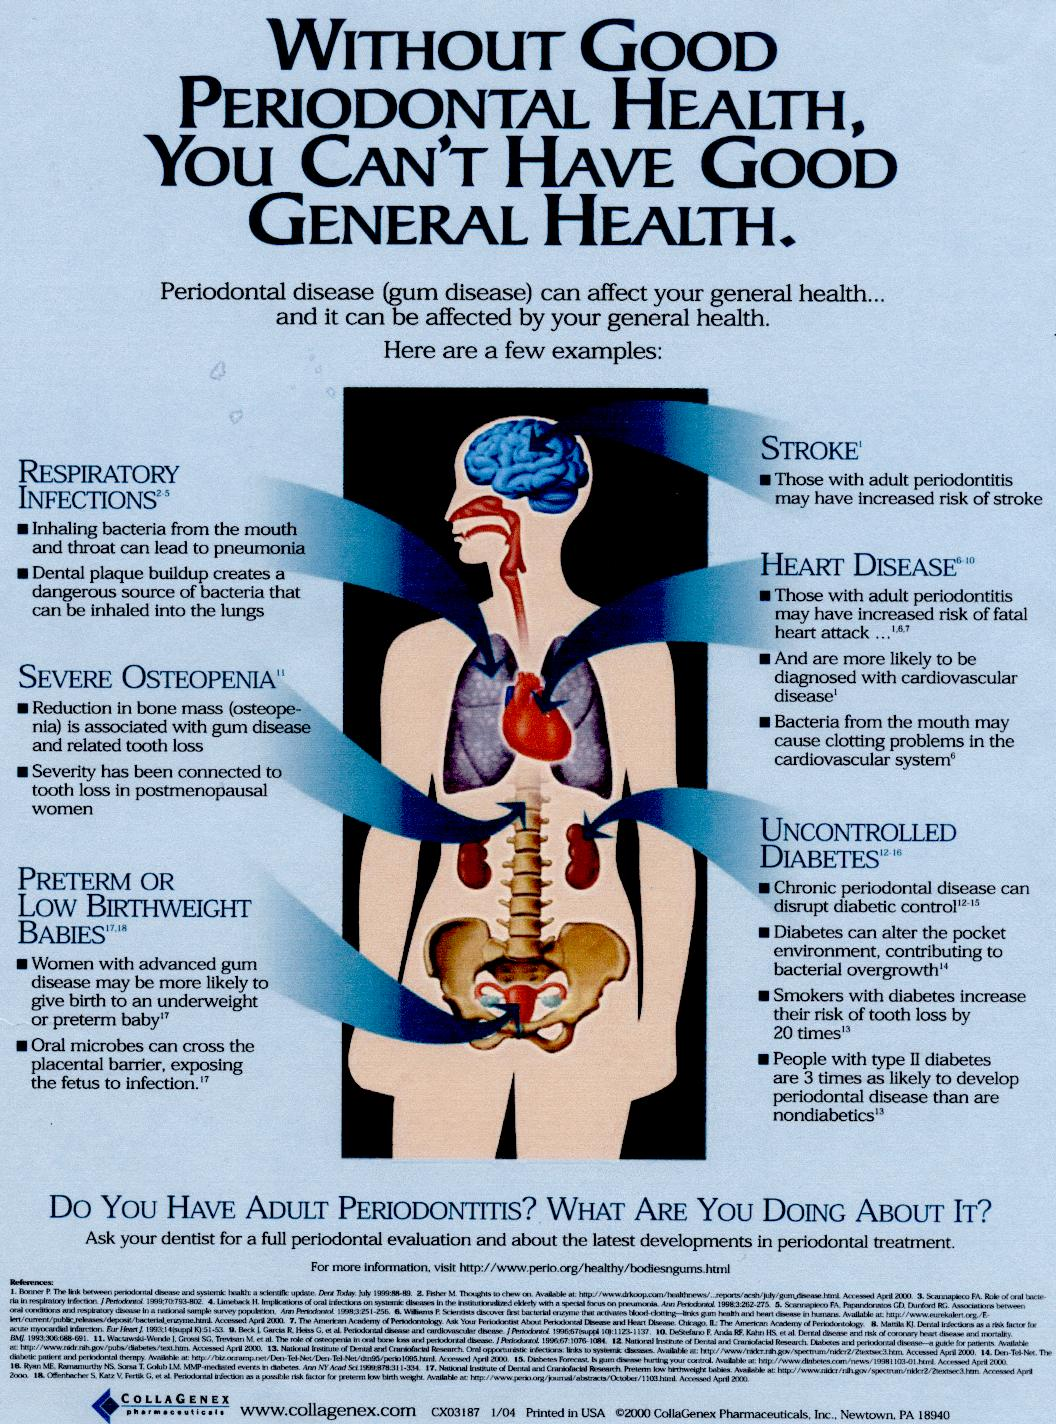 Oral Systemic Health Overview: Without Good Periodontal Health, You Can't Have Good General Health